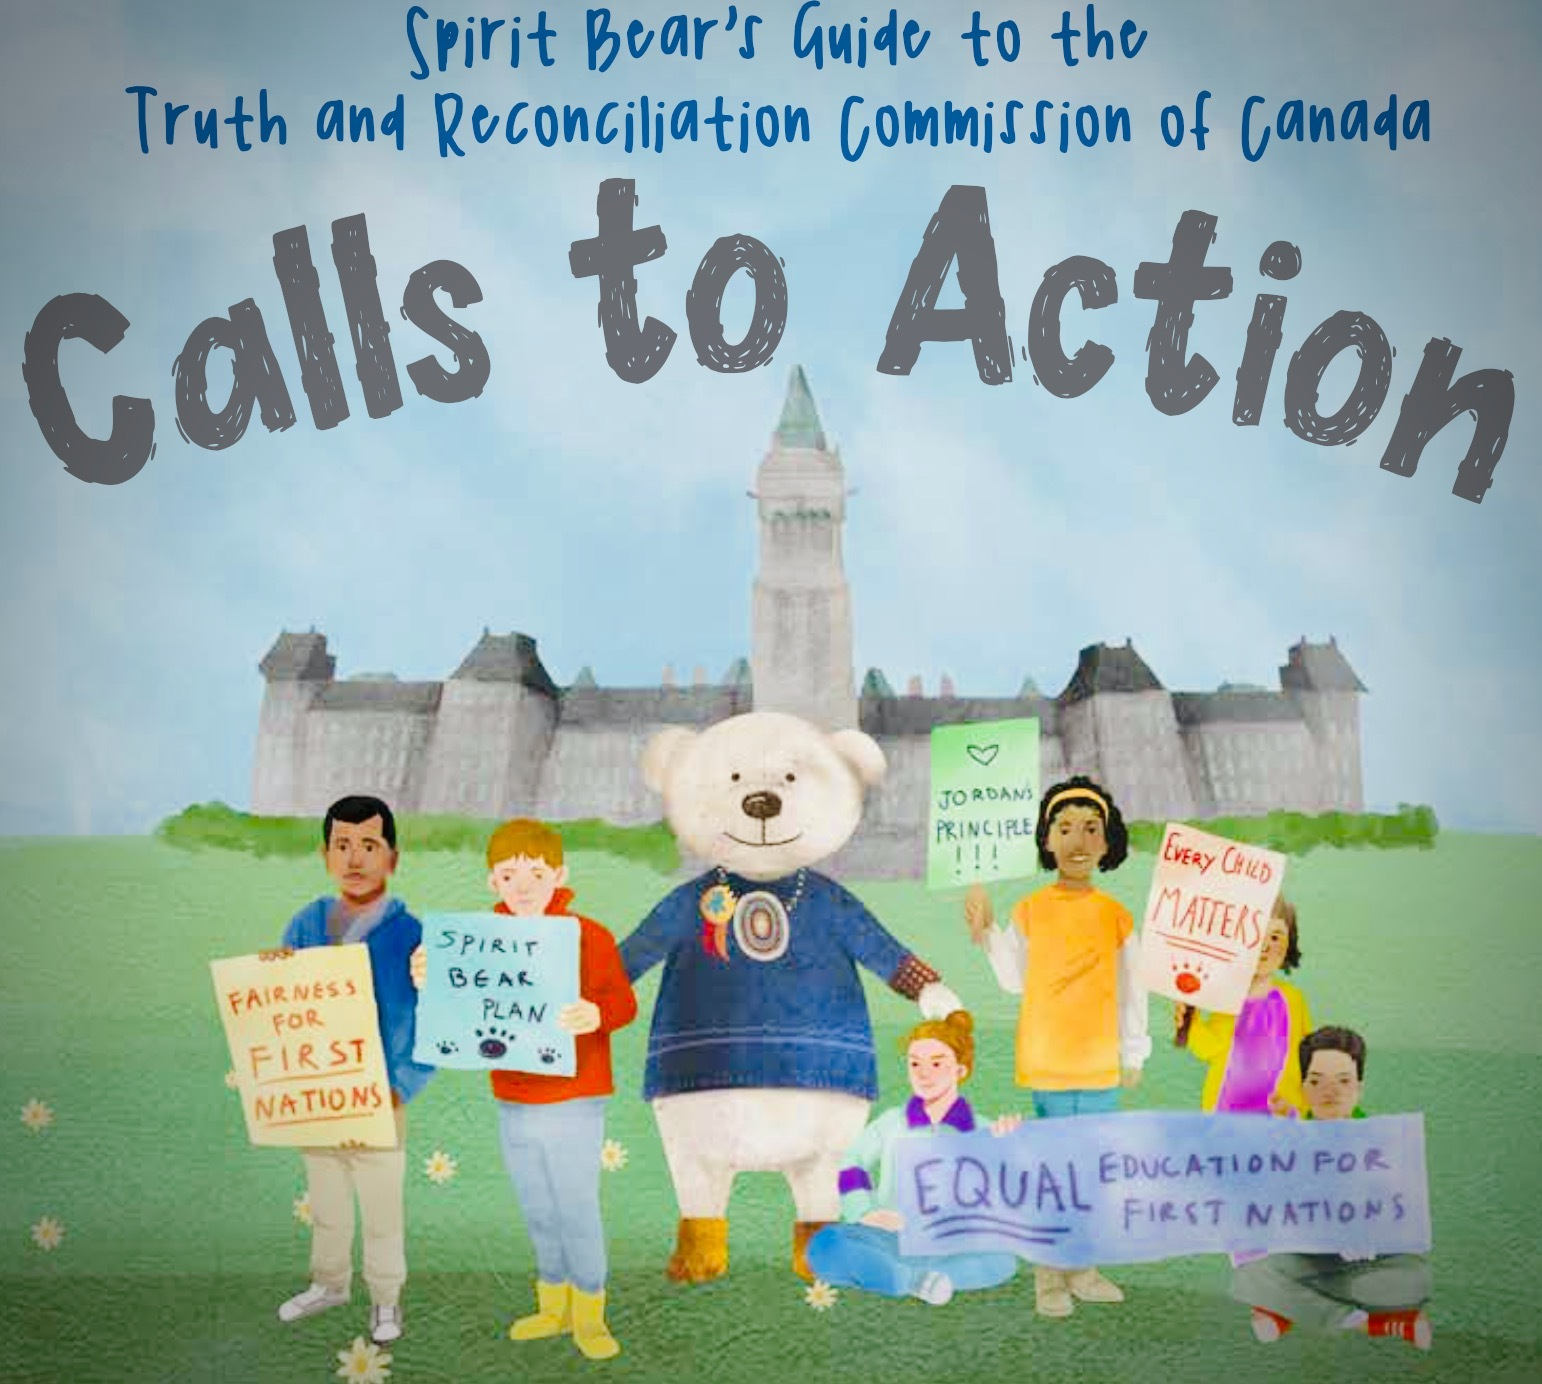 Spirit Bear's Guide to Truth and Reconciliation